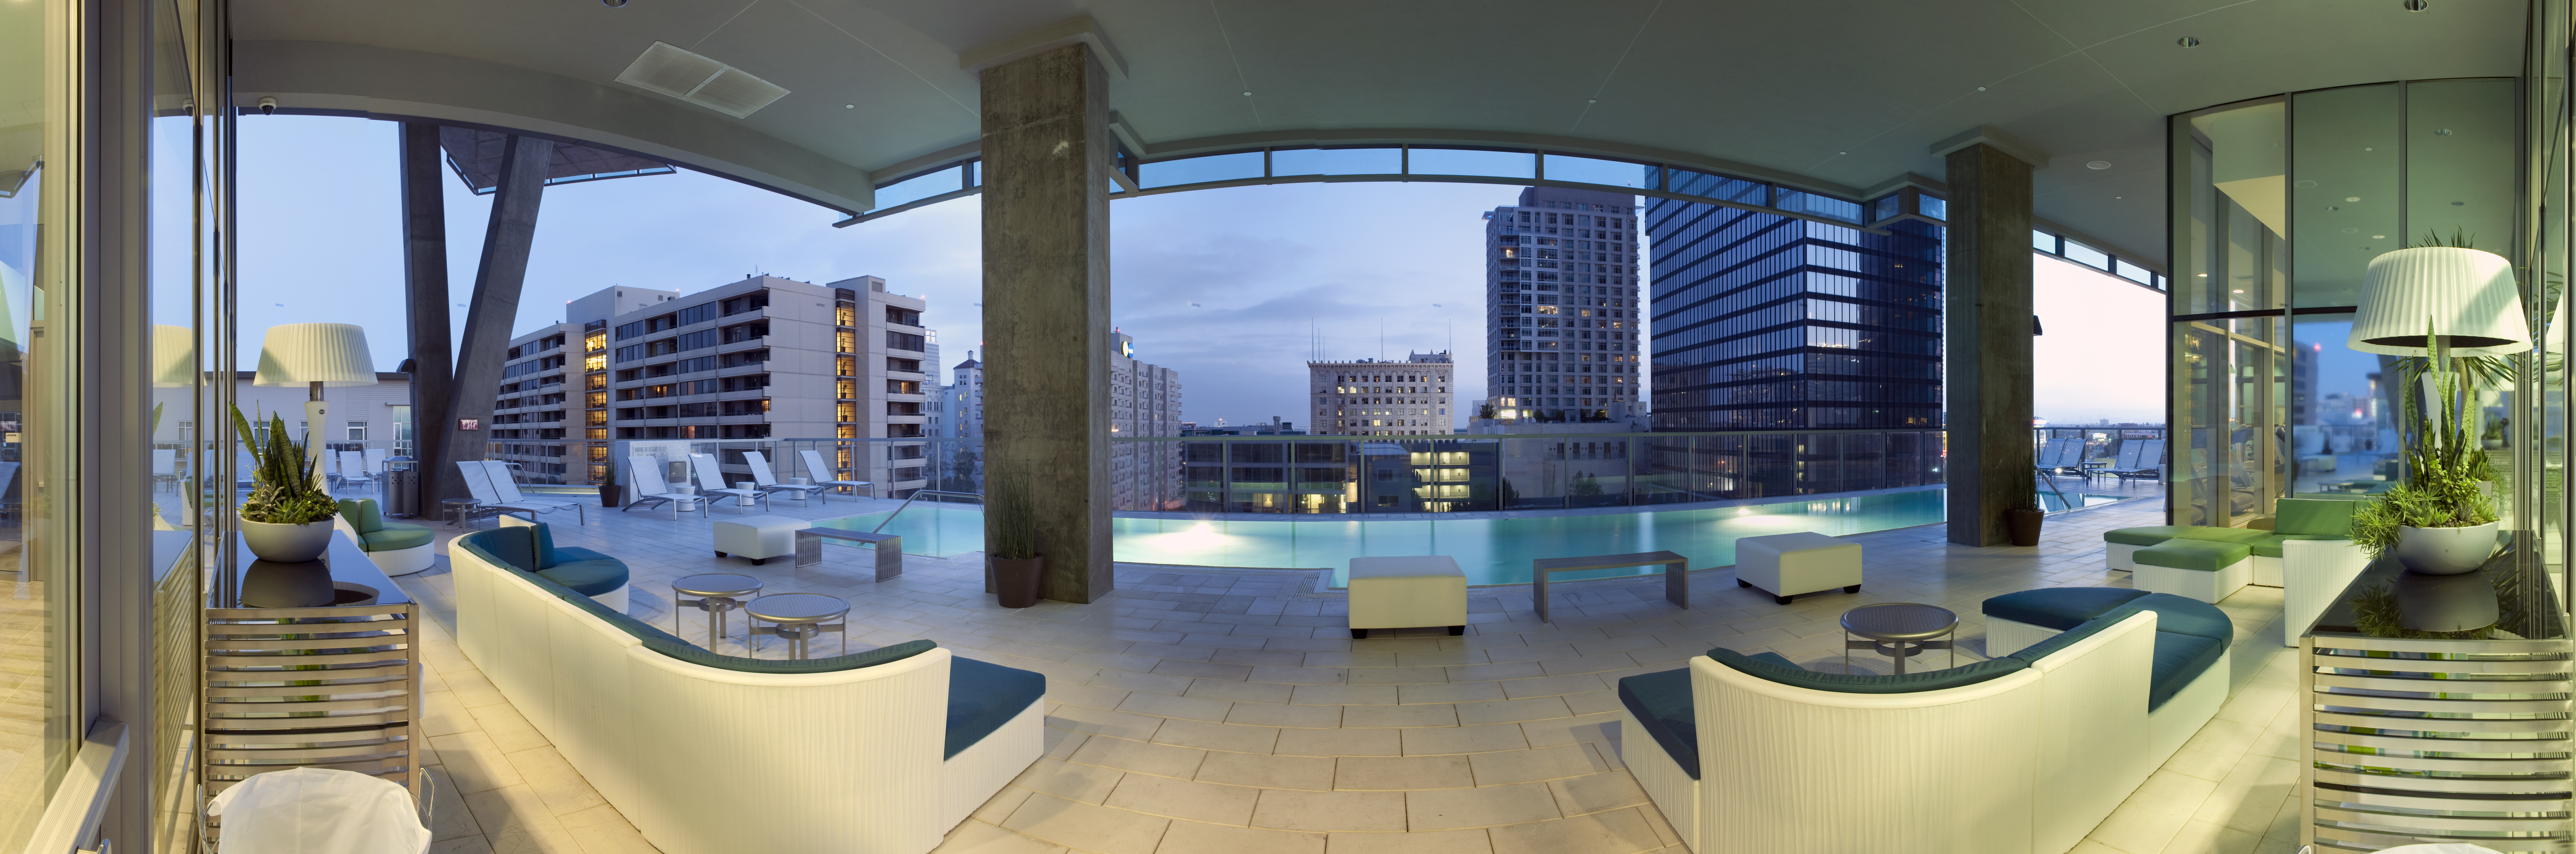 downtown los angeles luxury pool